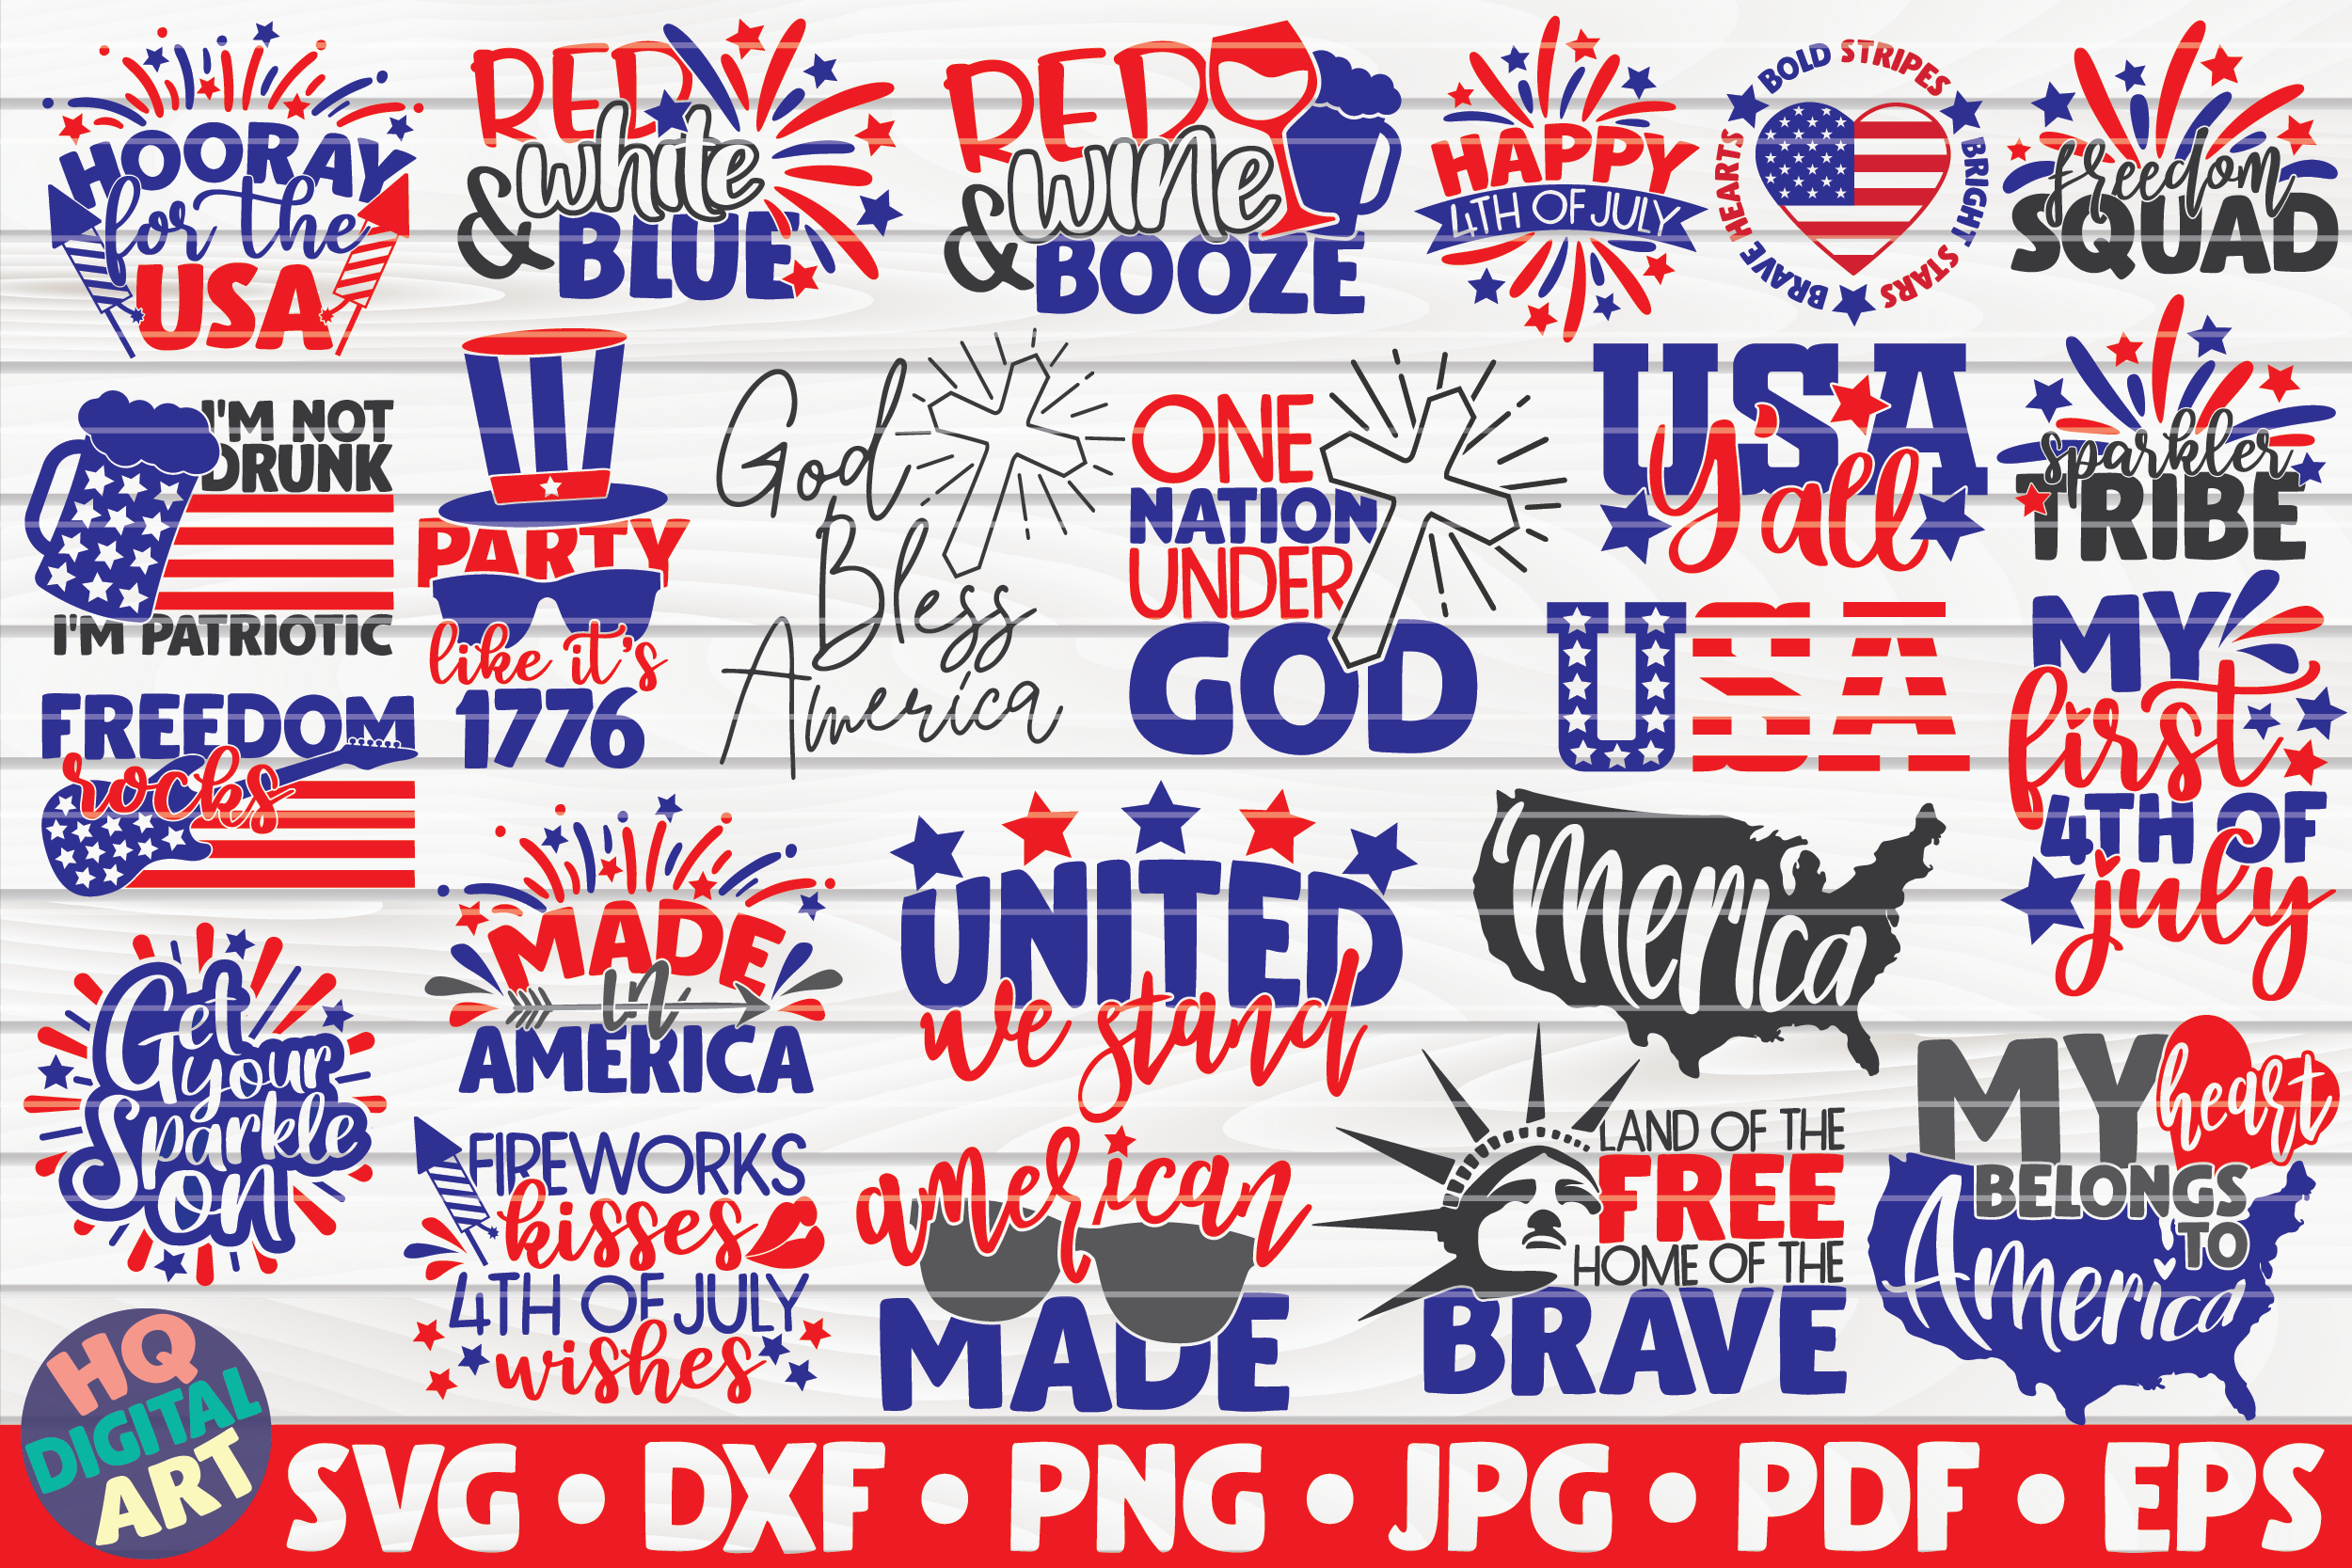 Download Free 4th Of July Bundle 23 Designs Graphic By Mihaibadea95 for Cricut Explore, Silhouette and other cutting machines.